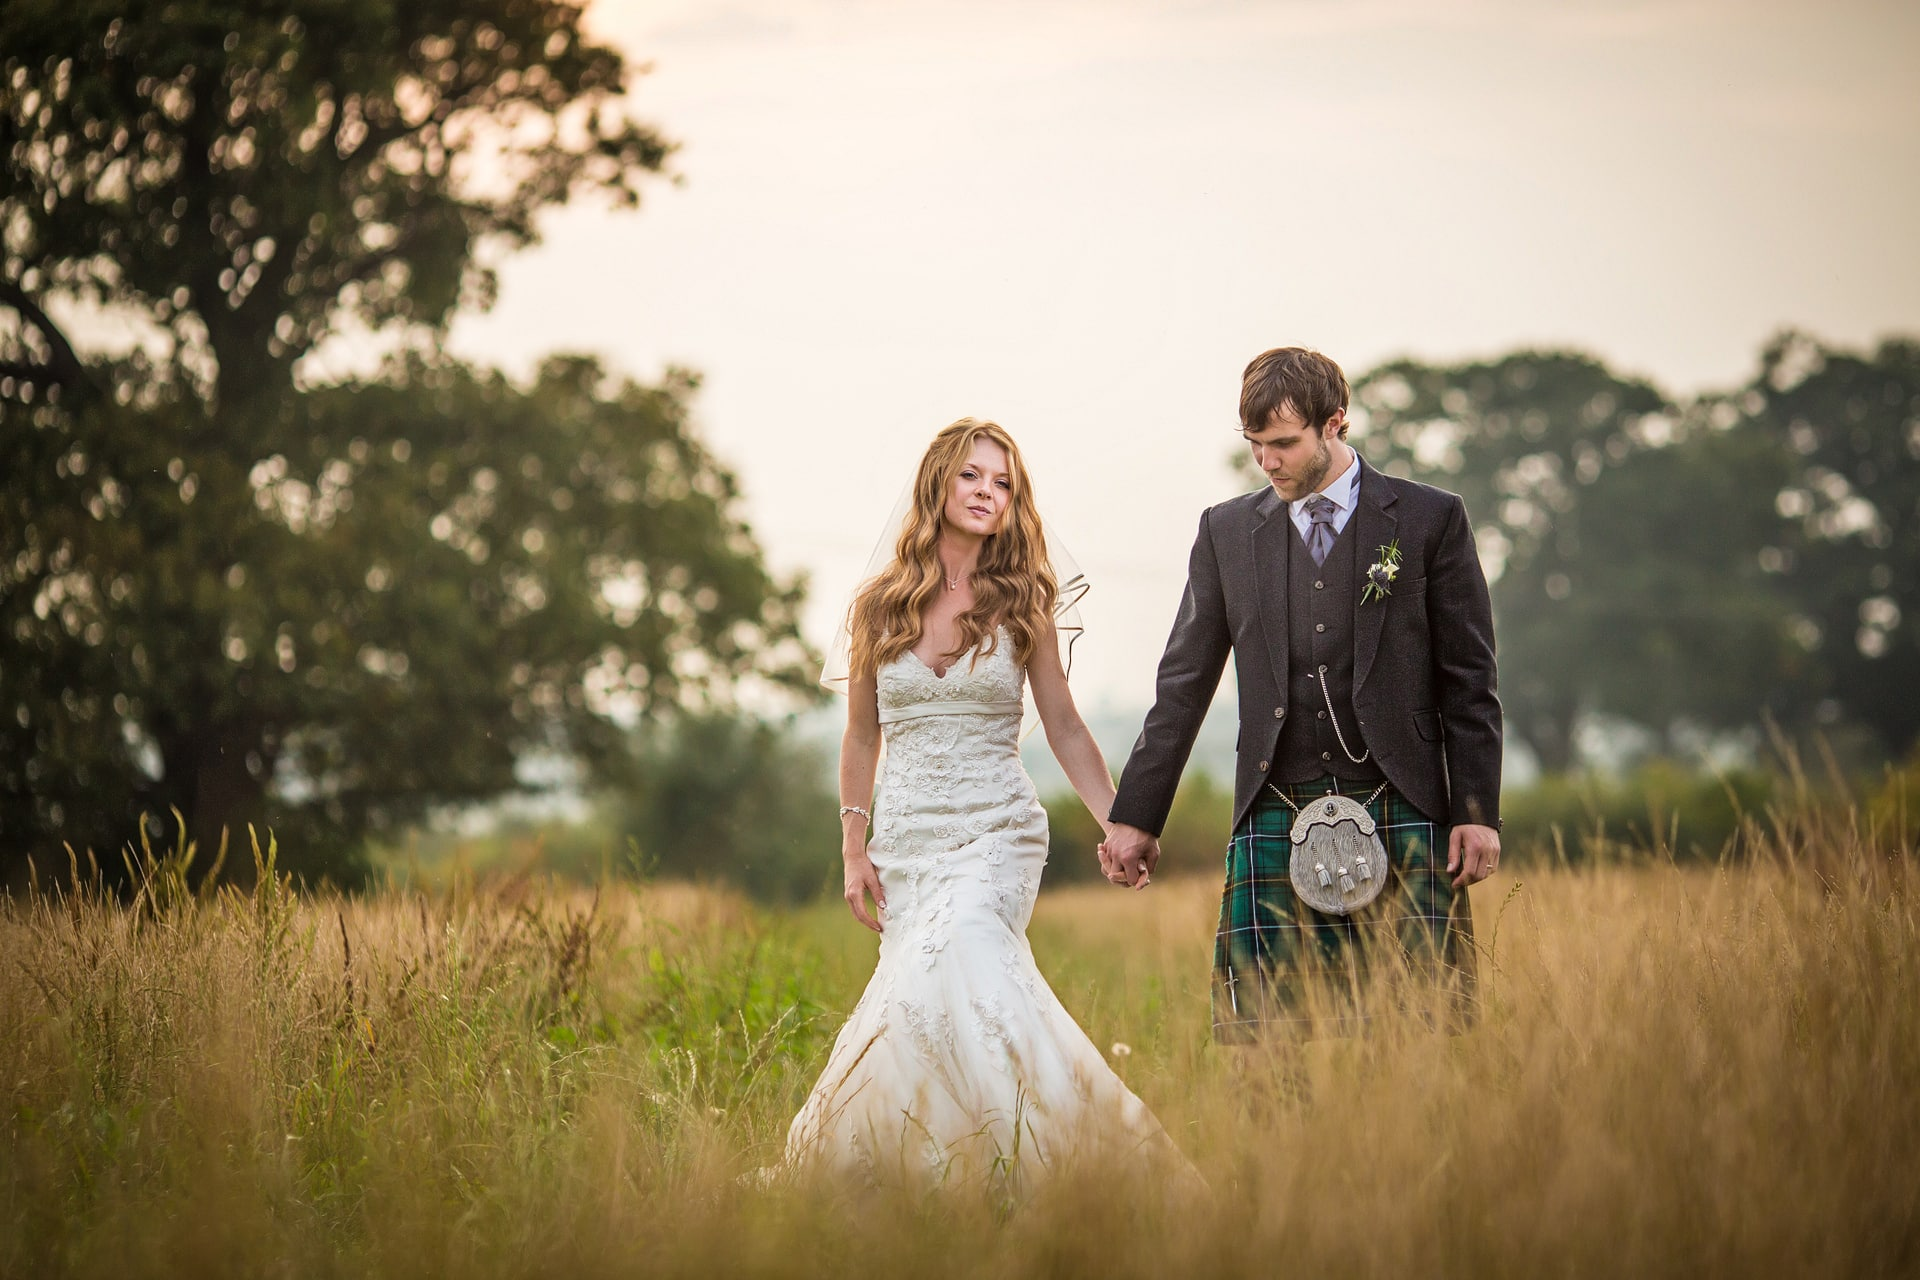 Wedding photographer in hundred house hotel field Chesire